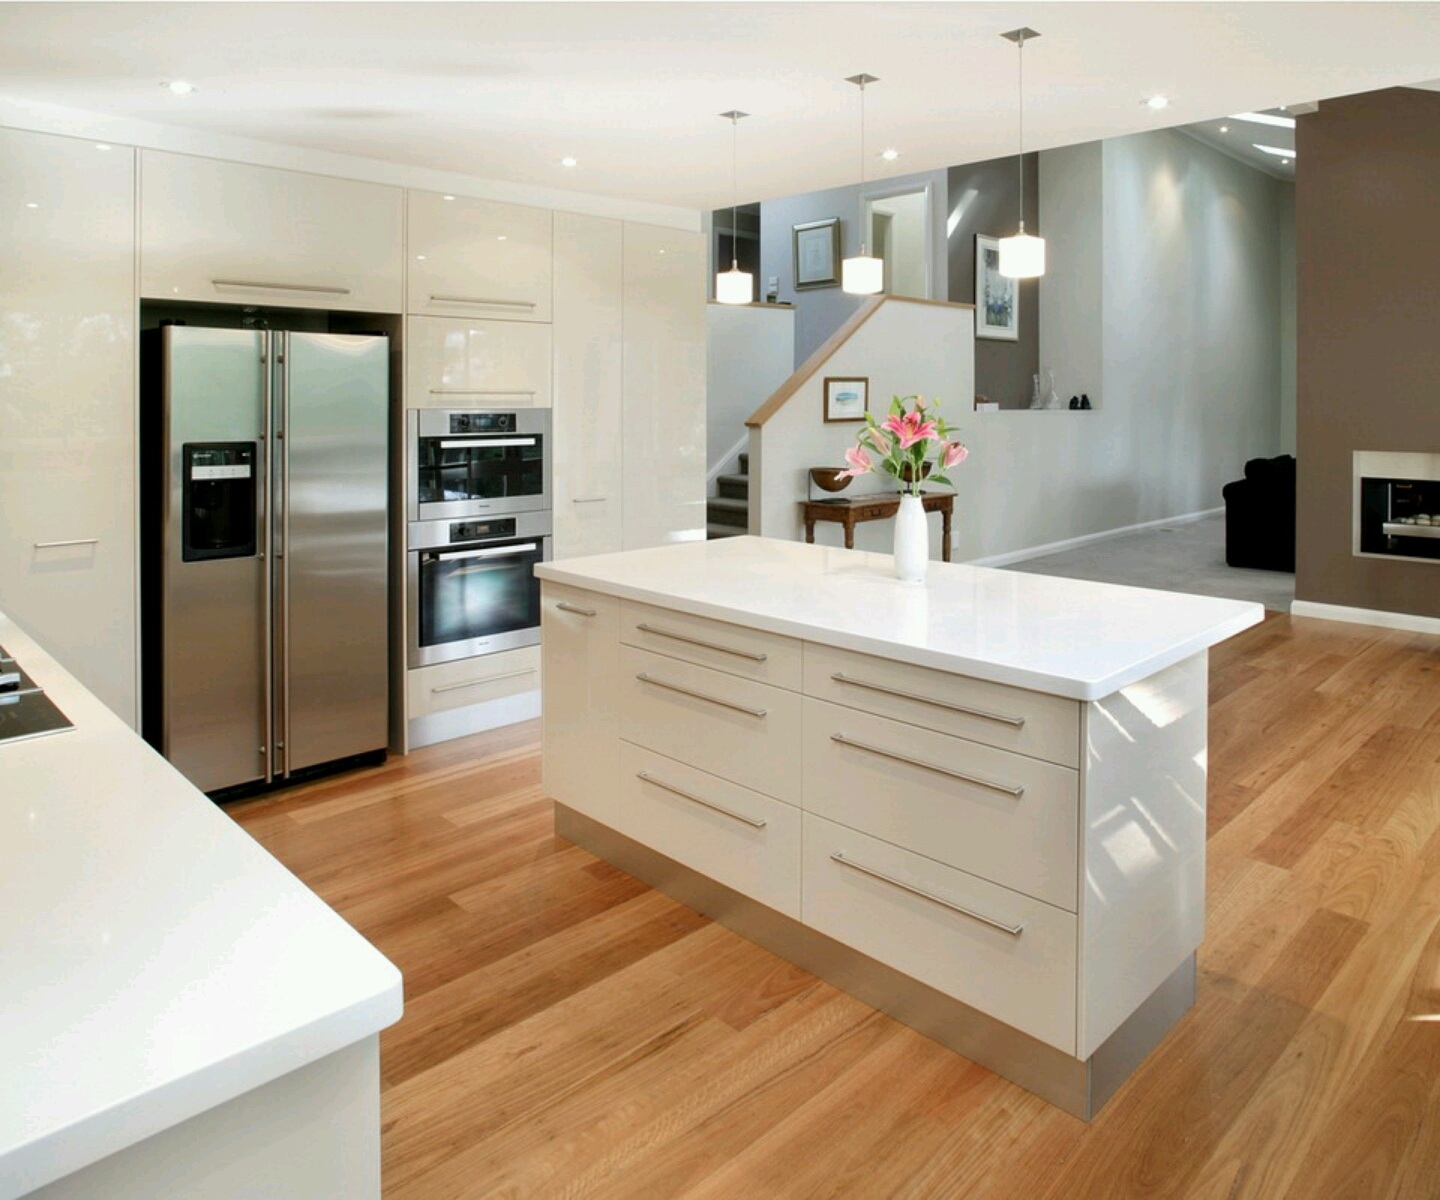 Luxury kitchen modern kitchen cabinets designs furniture gallery - Modern kitchen design photos ...